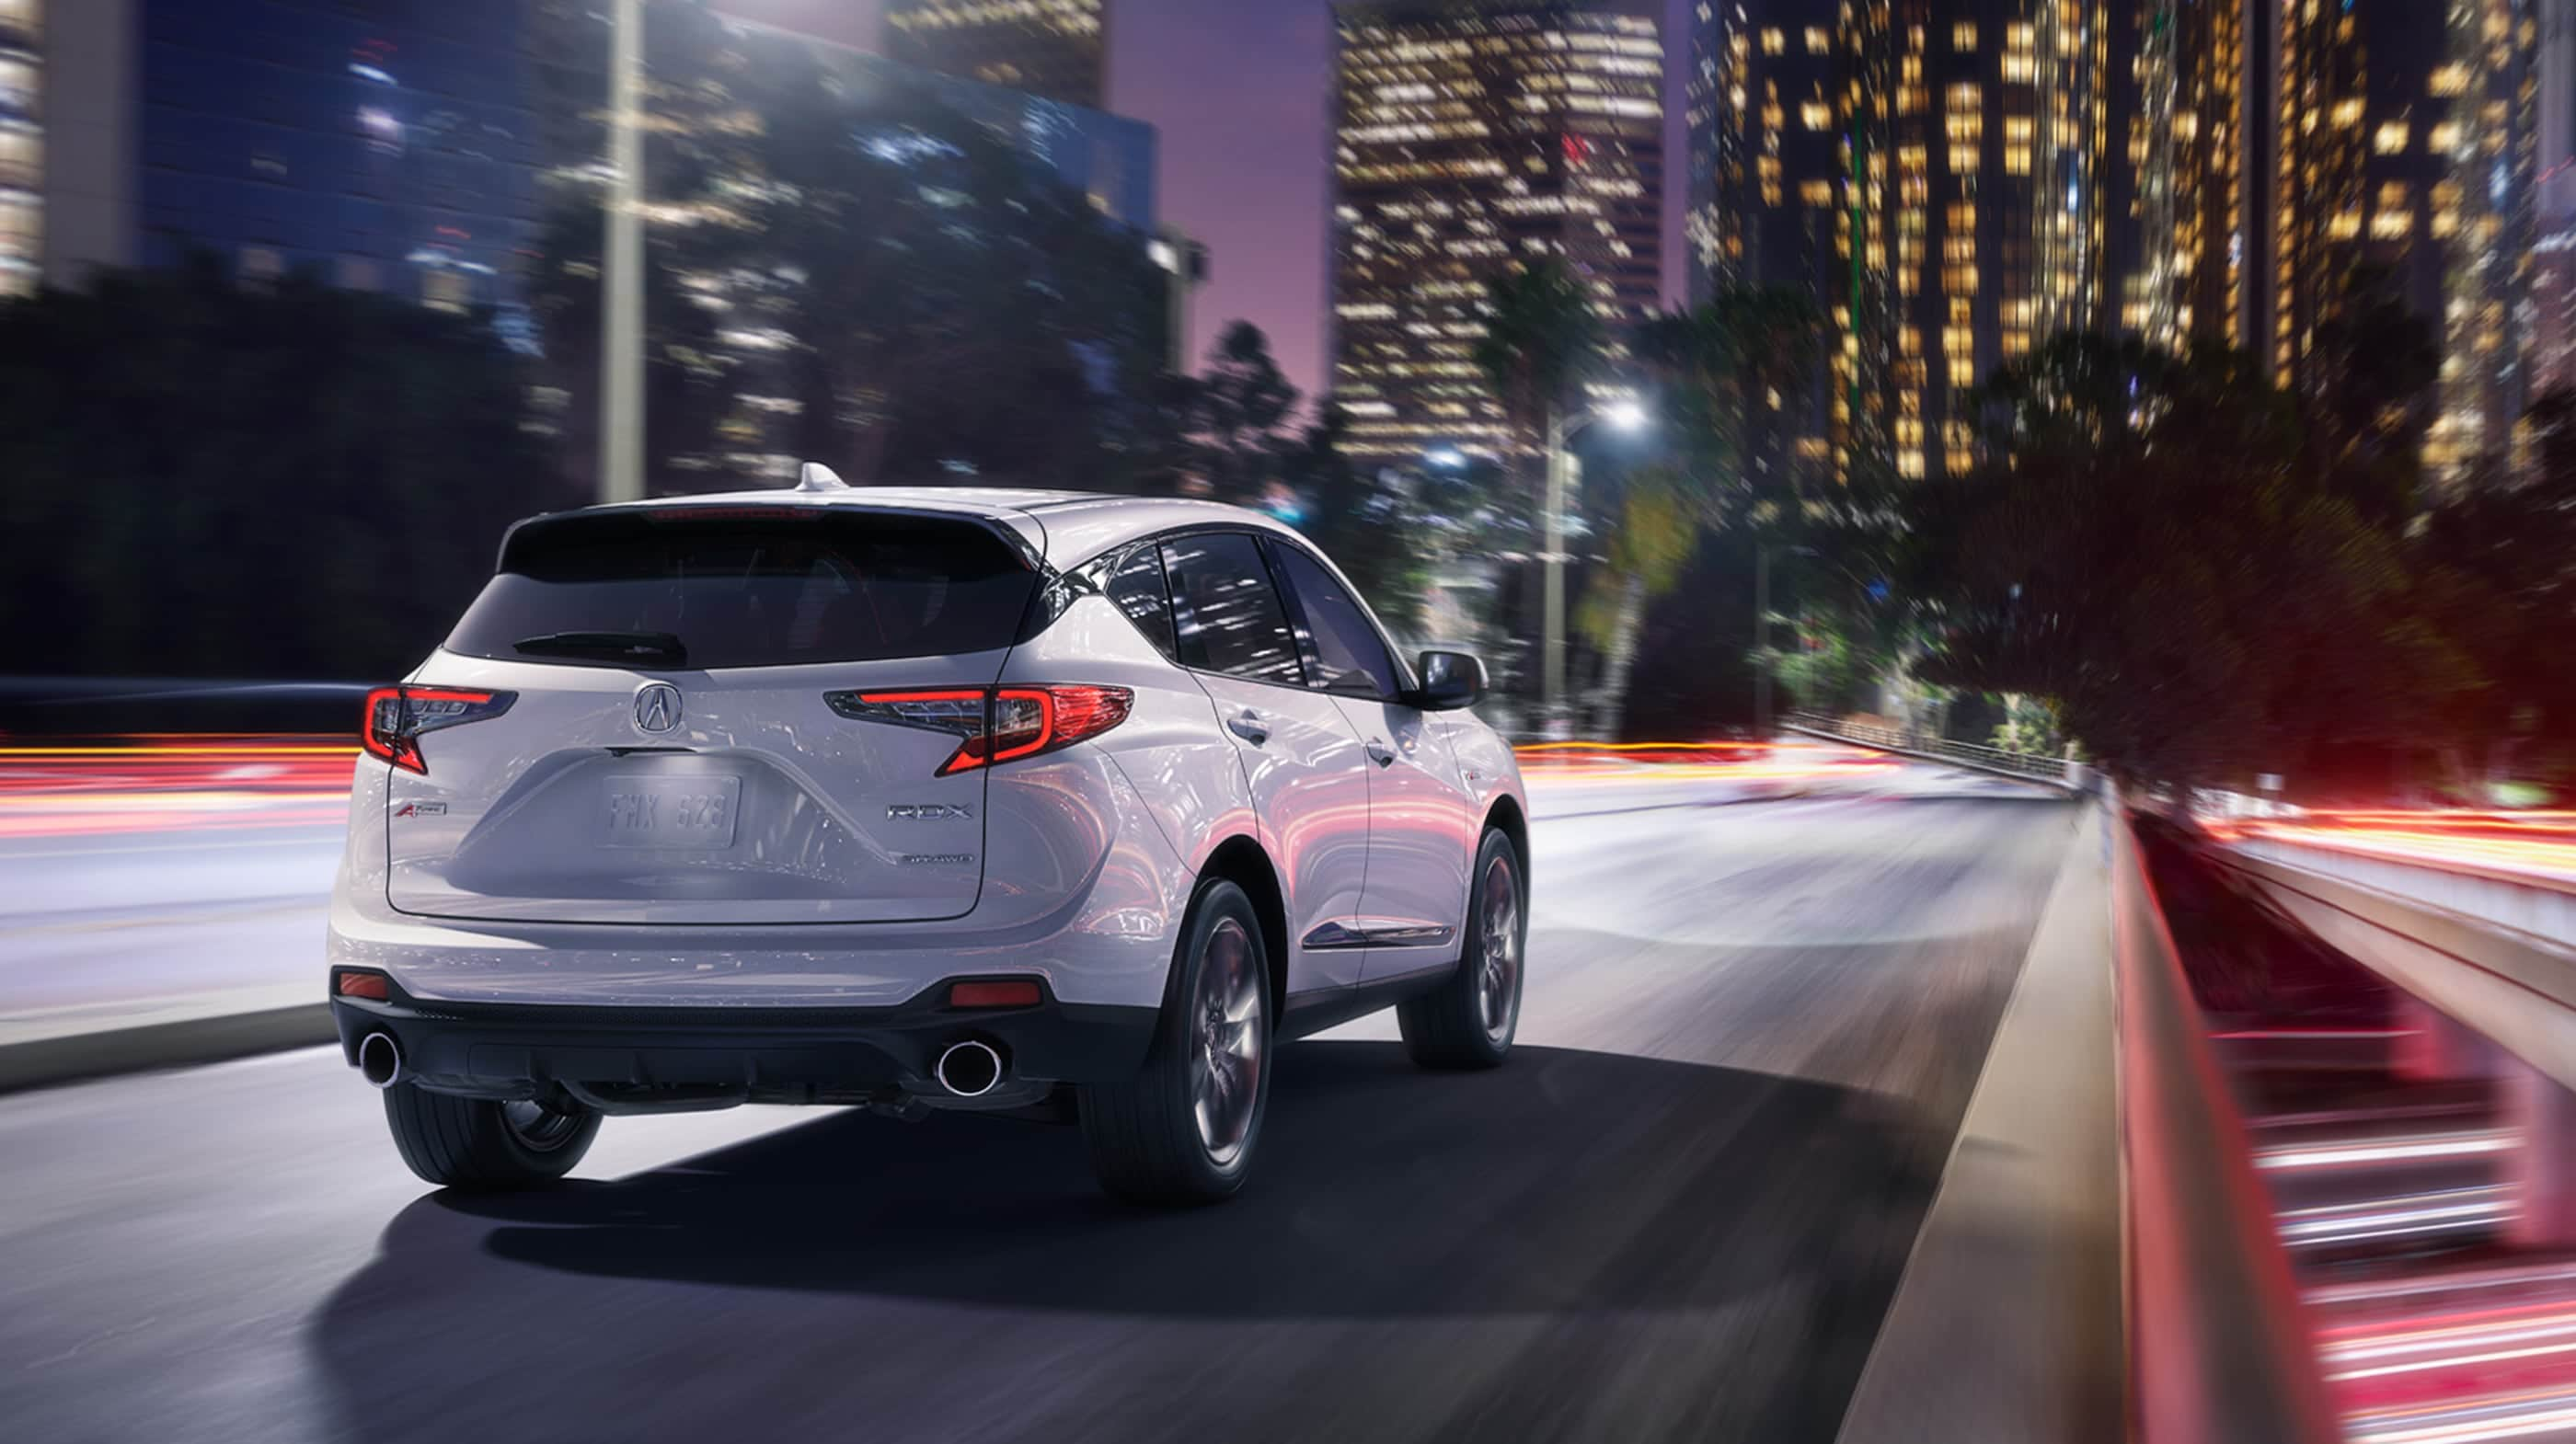 2020 Acura RDX for Sale near Kingsport, TN